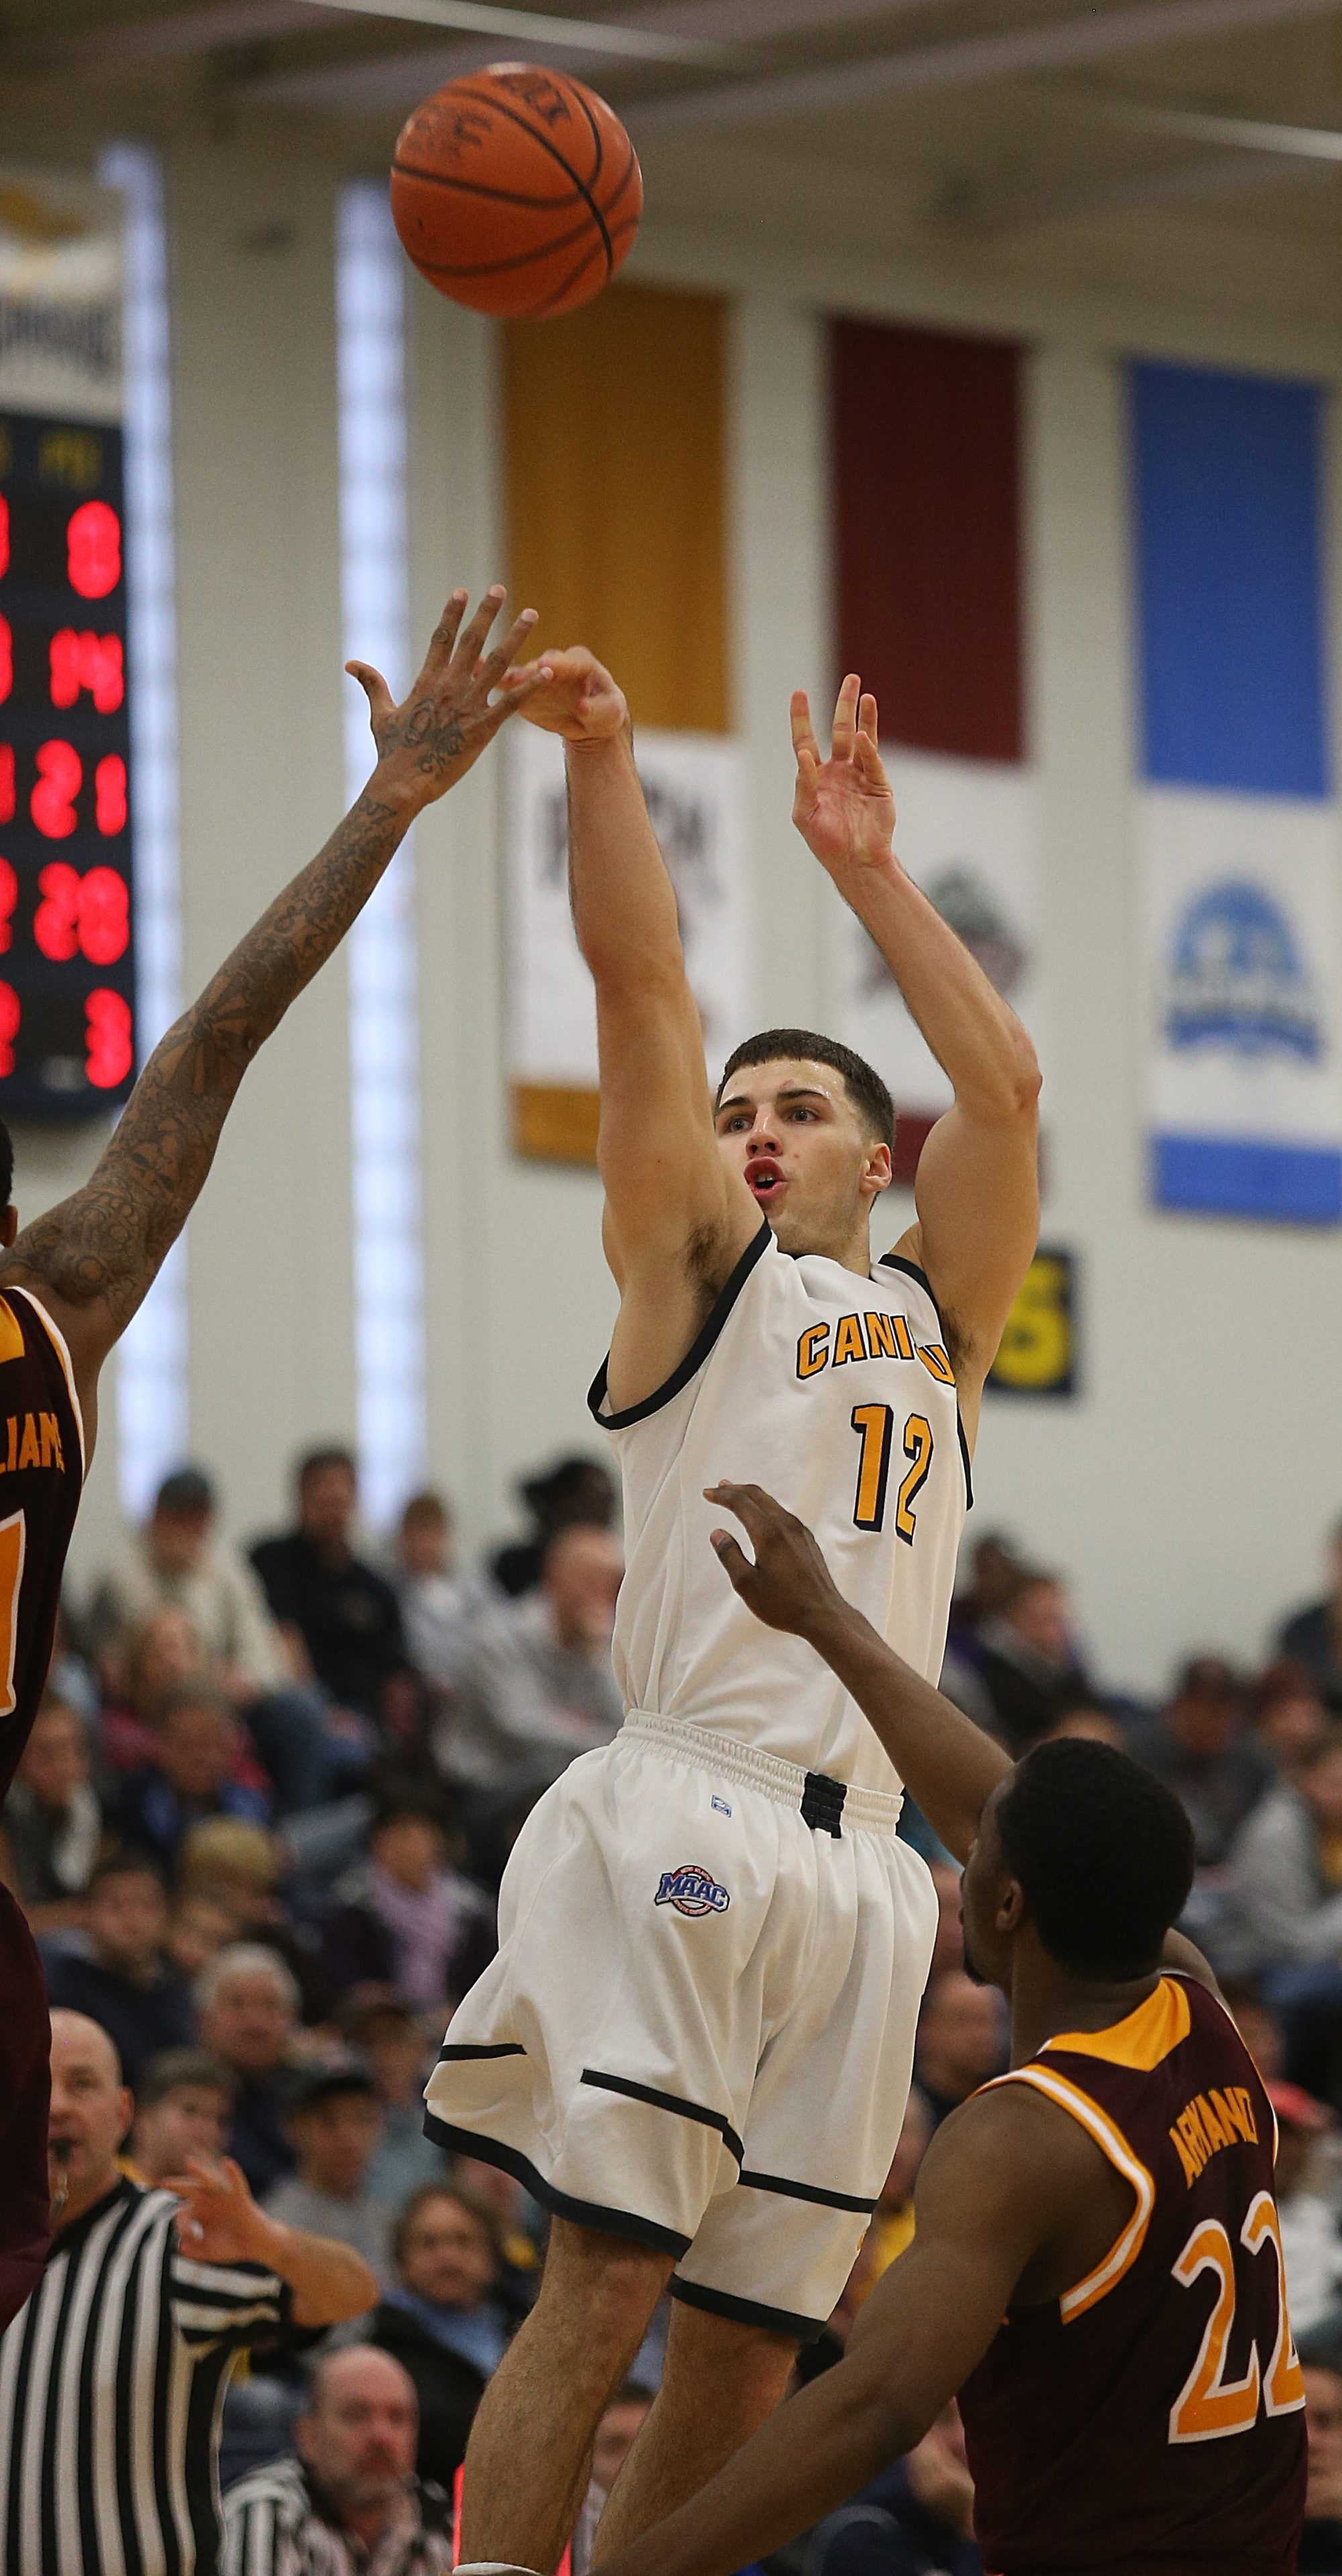 Billy Baron of Canisius was a unanimous selection for the All-MAAC team chosen by the league's coaches.